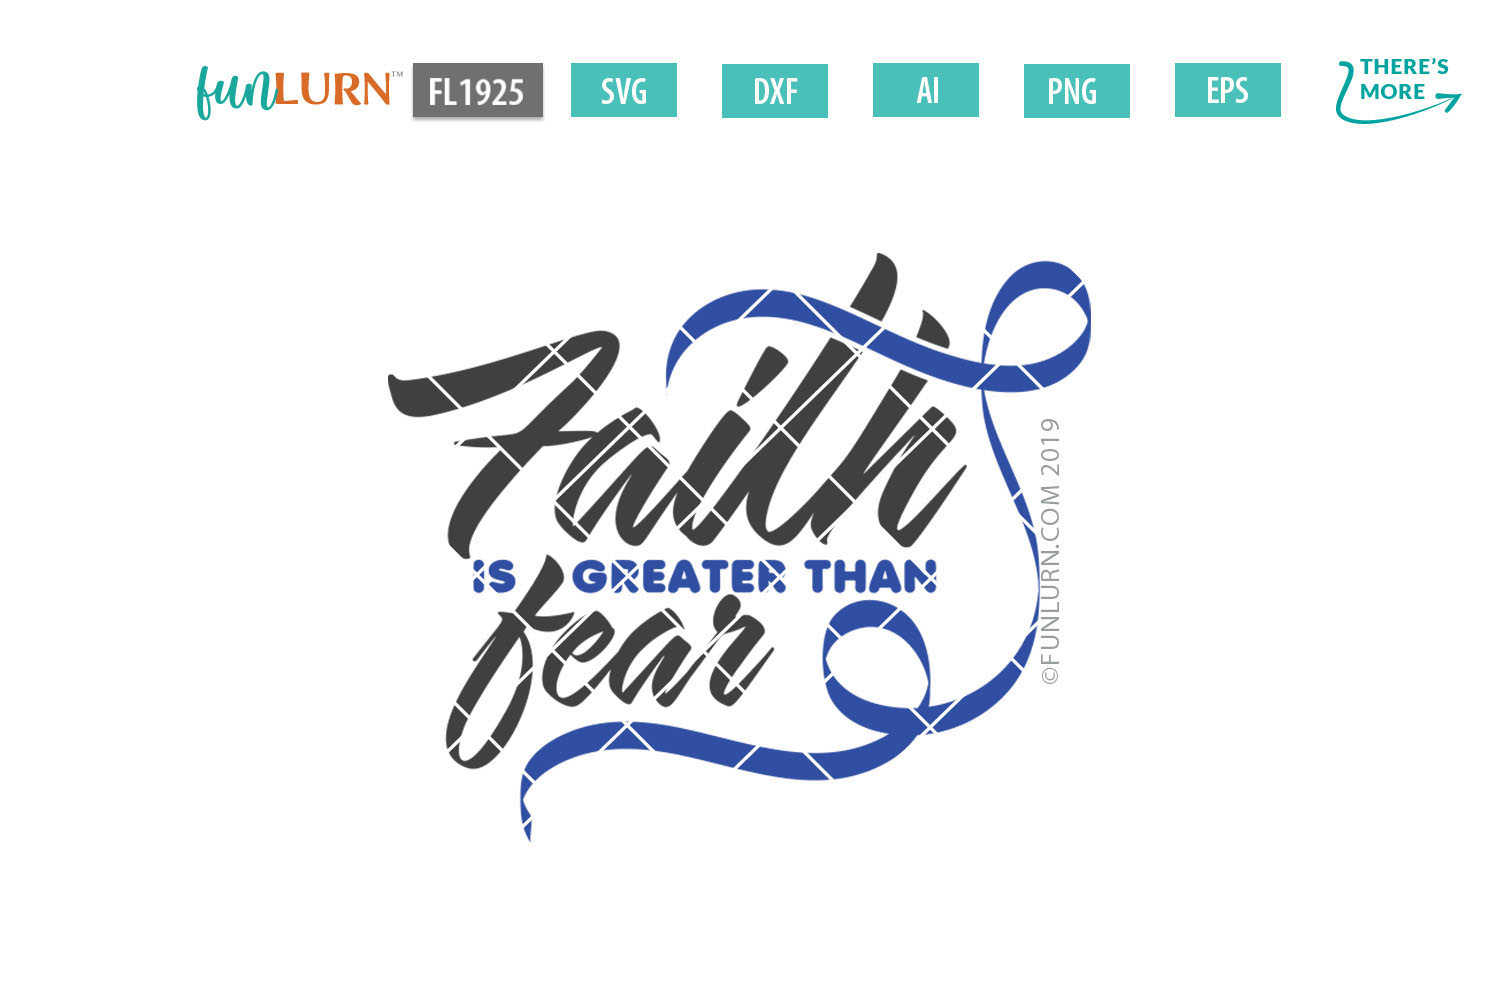 Faith is Greater Than Fear Dark Blue Ribbon SVG Cut File example image 2